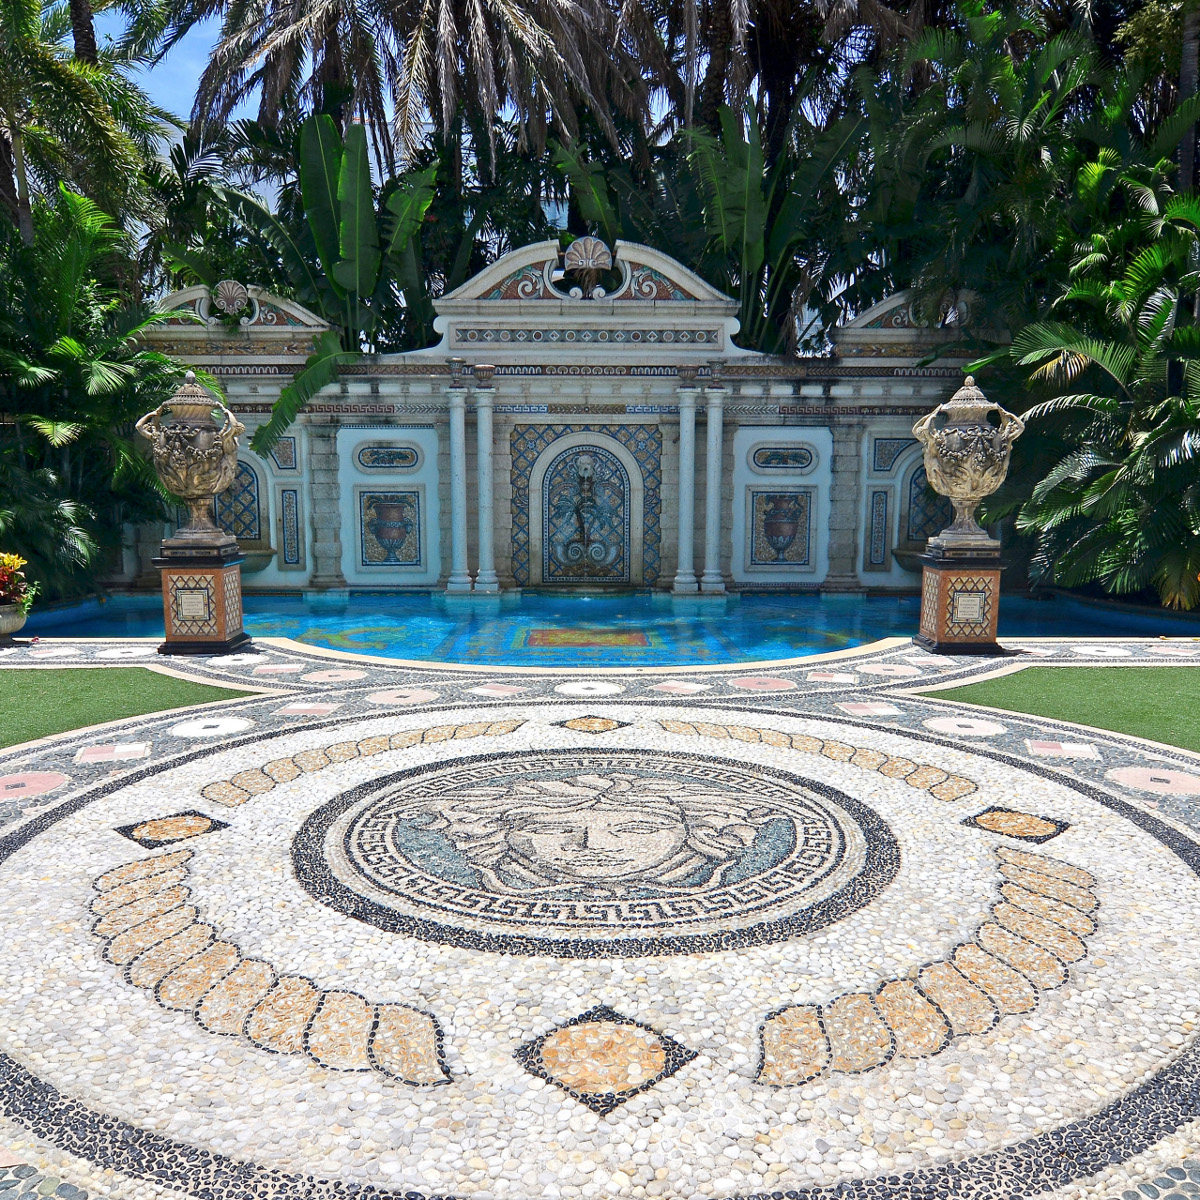 The mosaic on the the patio of the South Beach mansion formerly owned by fashion designer Gianni Versace in Miami Beach, Florida July 23, 2013. Versace spent $33 million renovating the house, which features a 54-foot mosaic pool lined with 24-karat gold, according to Fisher Auction Company. The mansion will be offered for sale at an auction on September 17, 2013.